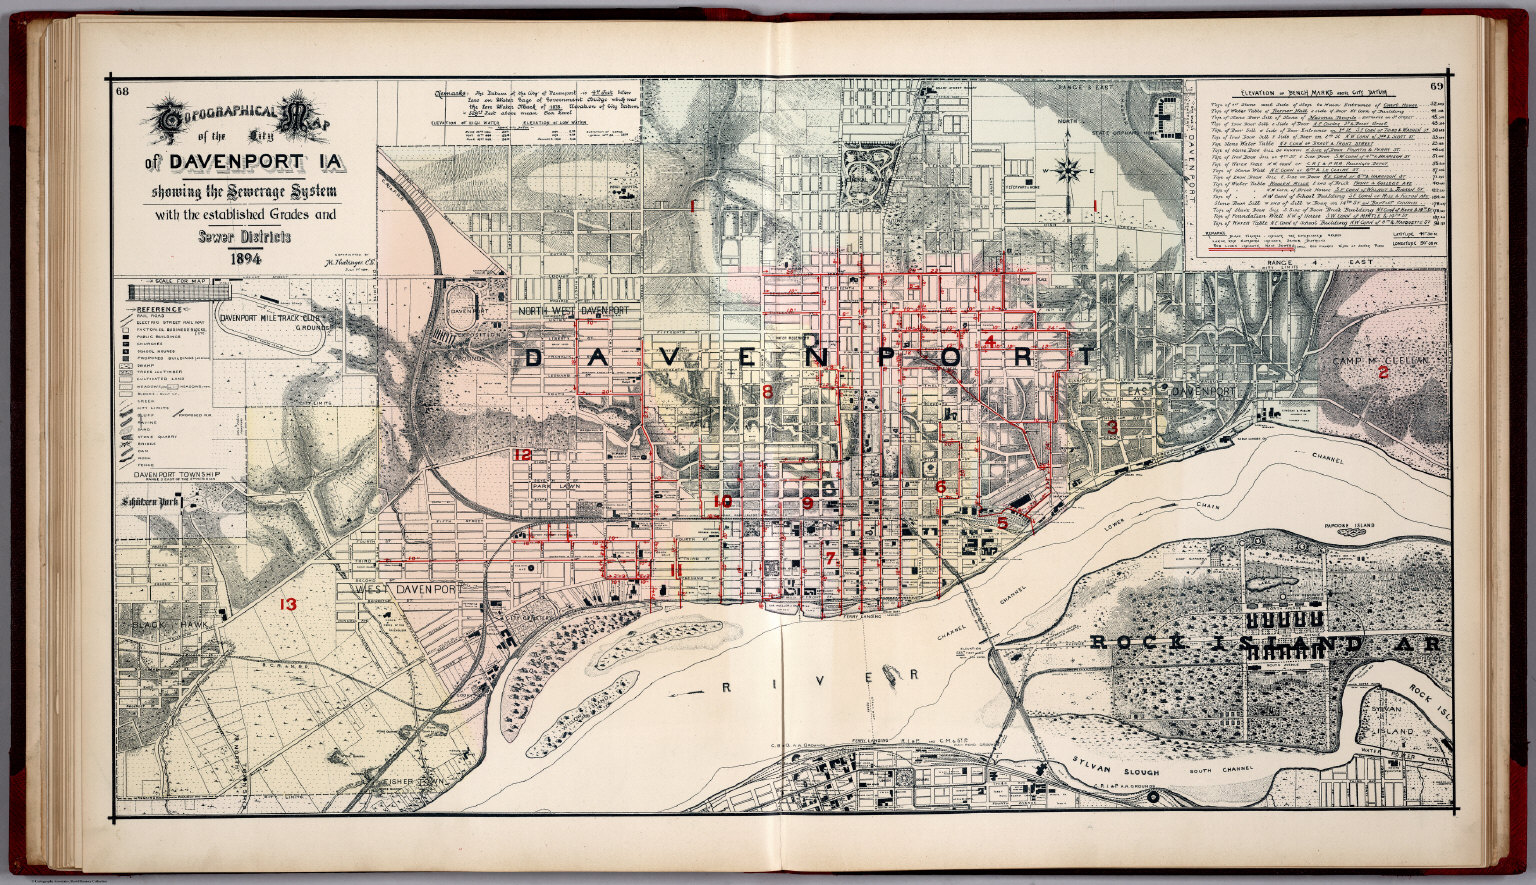 Map Of Davenport Iowa City of Davenport, Iowa, Showing the Sewerage System.   David  Map Of Davenport Iowa